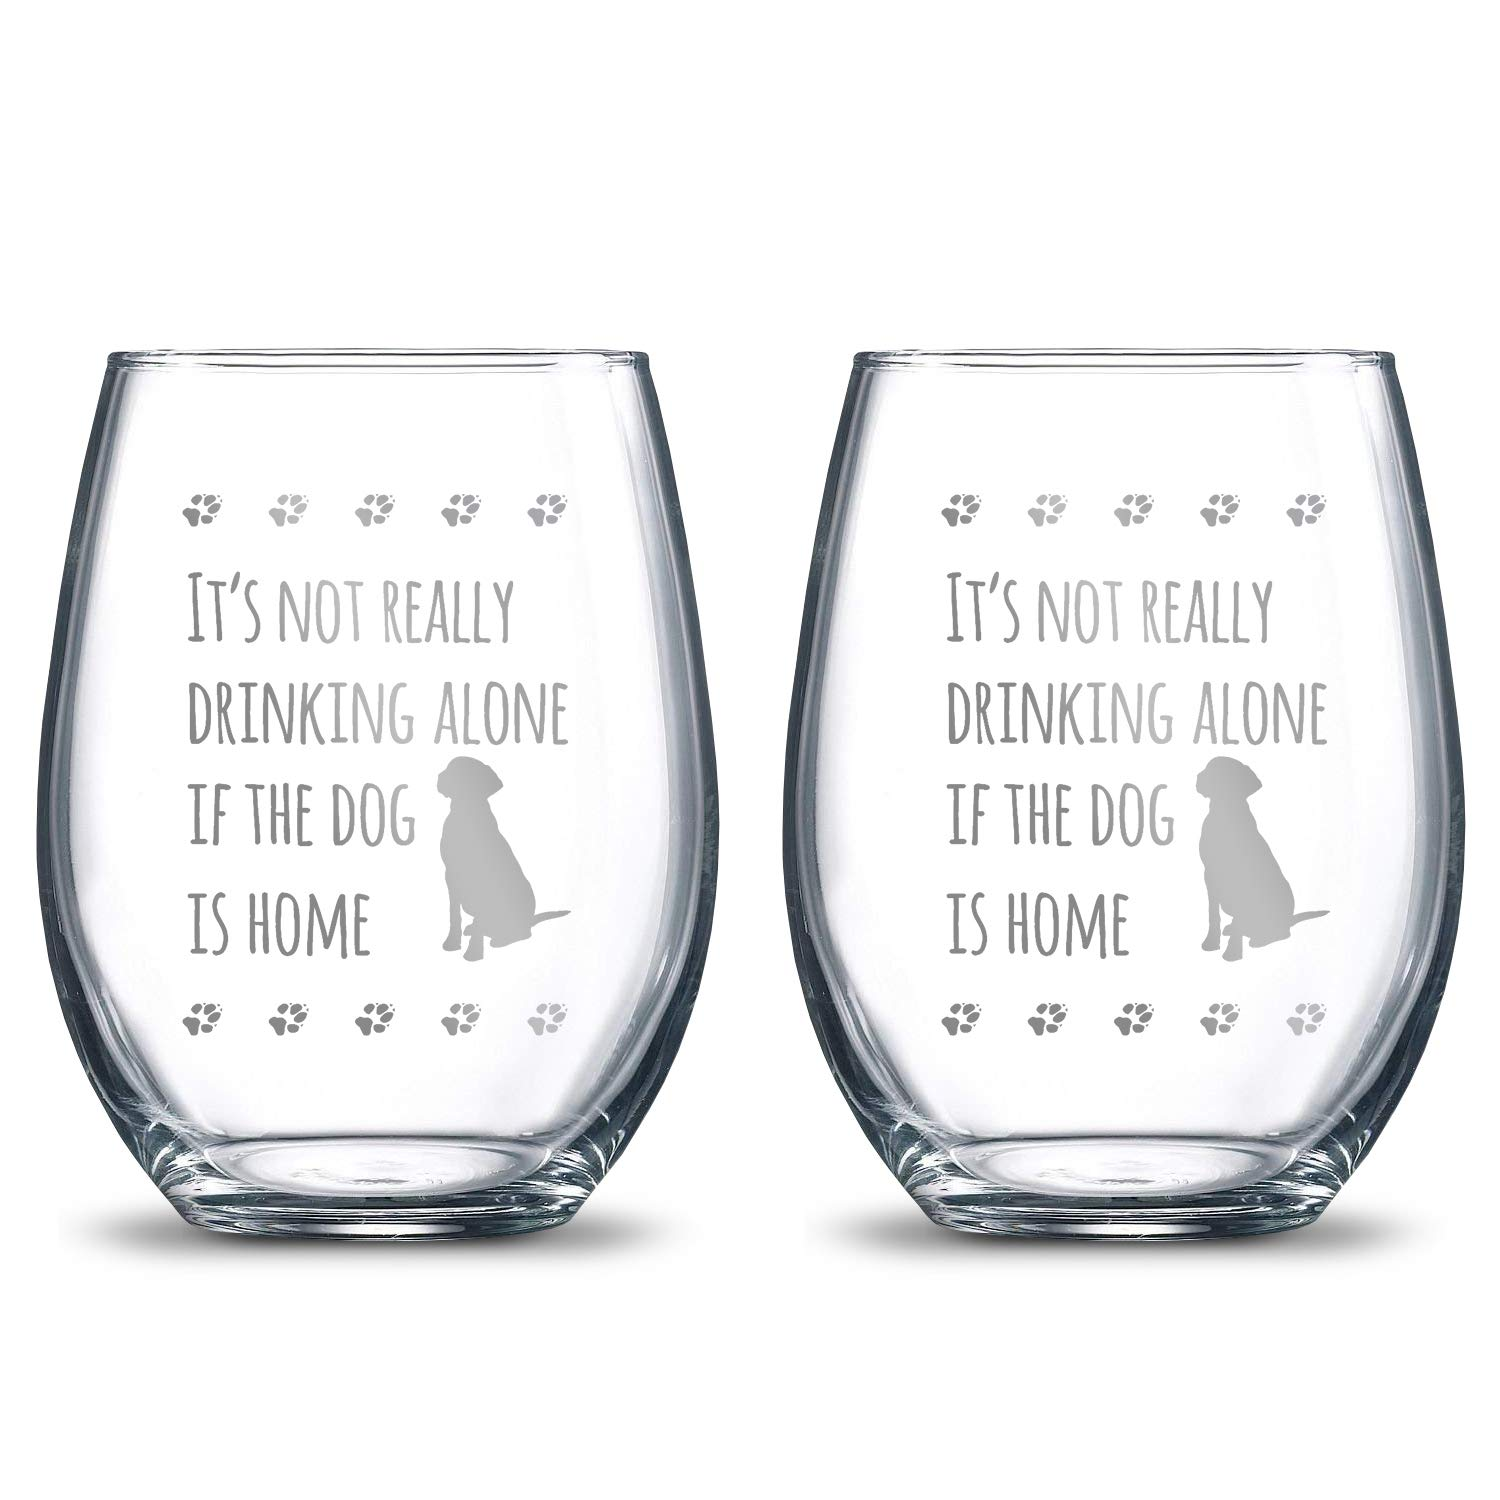 It's Not Really Drinking Alone if the Dog is Home 21oz. Etched Stemless Wine Glasses   2 Glass Set Packed in an Stylish Gift Box   Premium Hand Etching   The Perfect Dog Lovers Gift